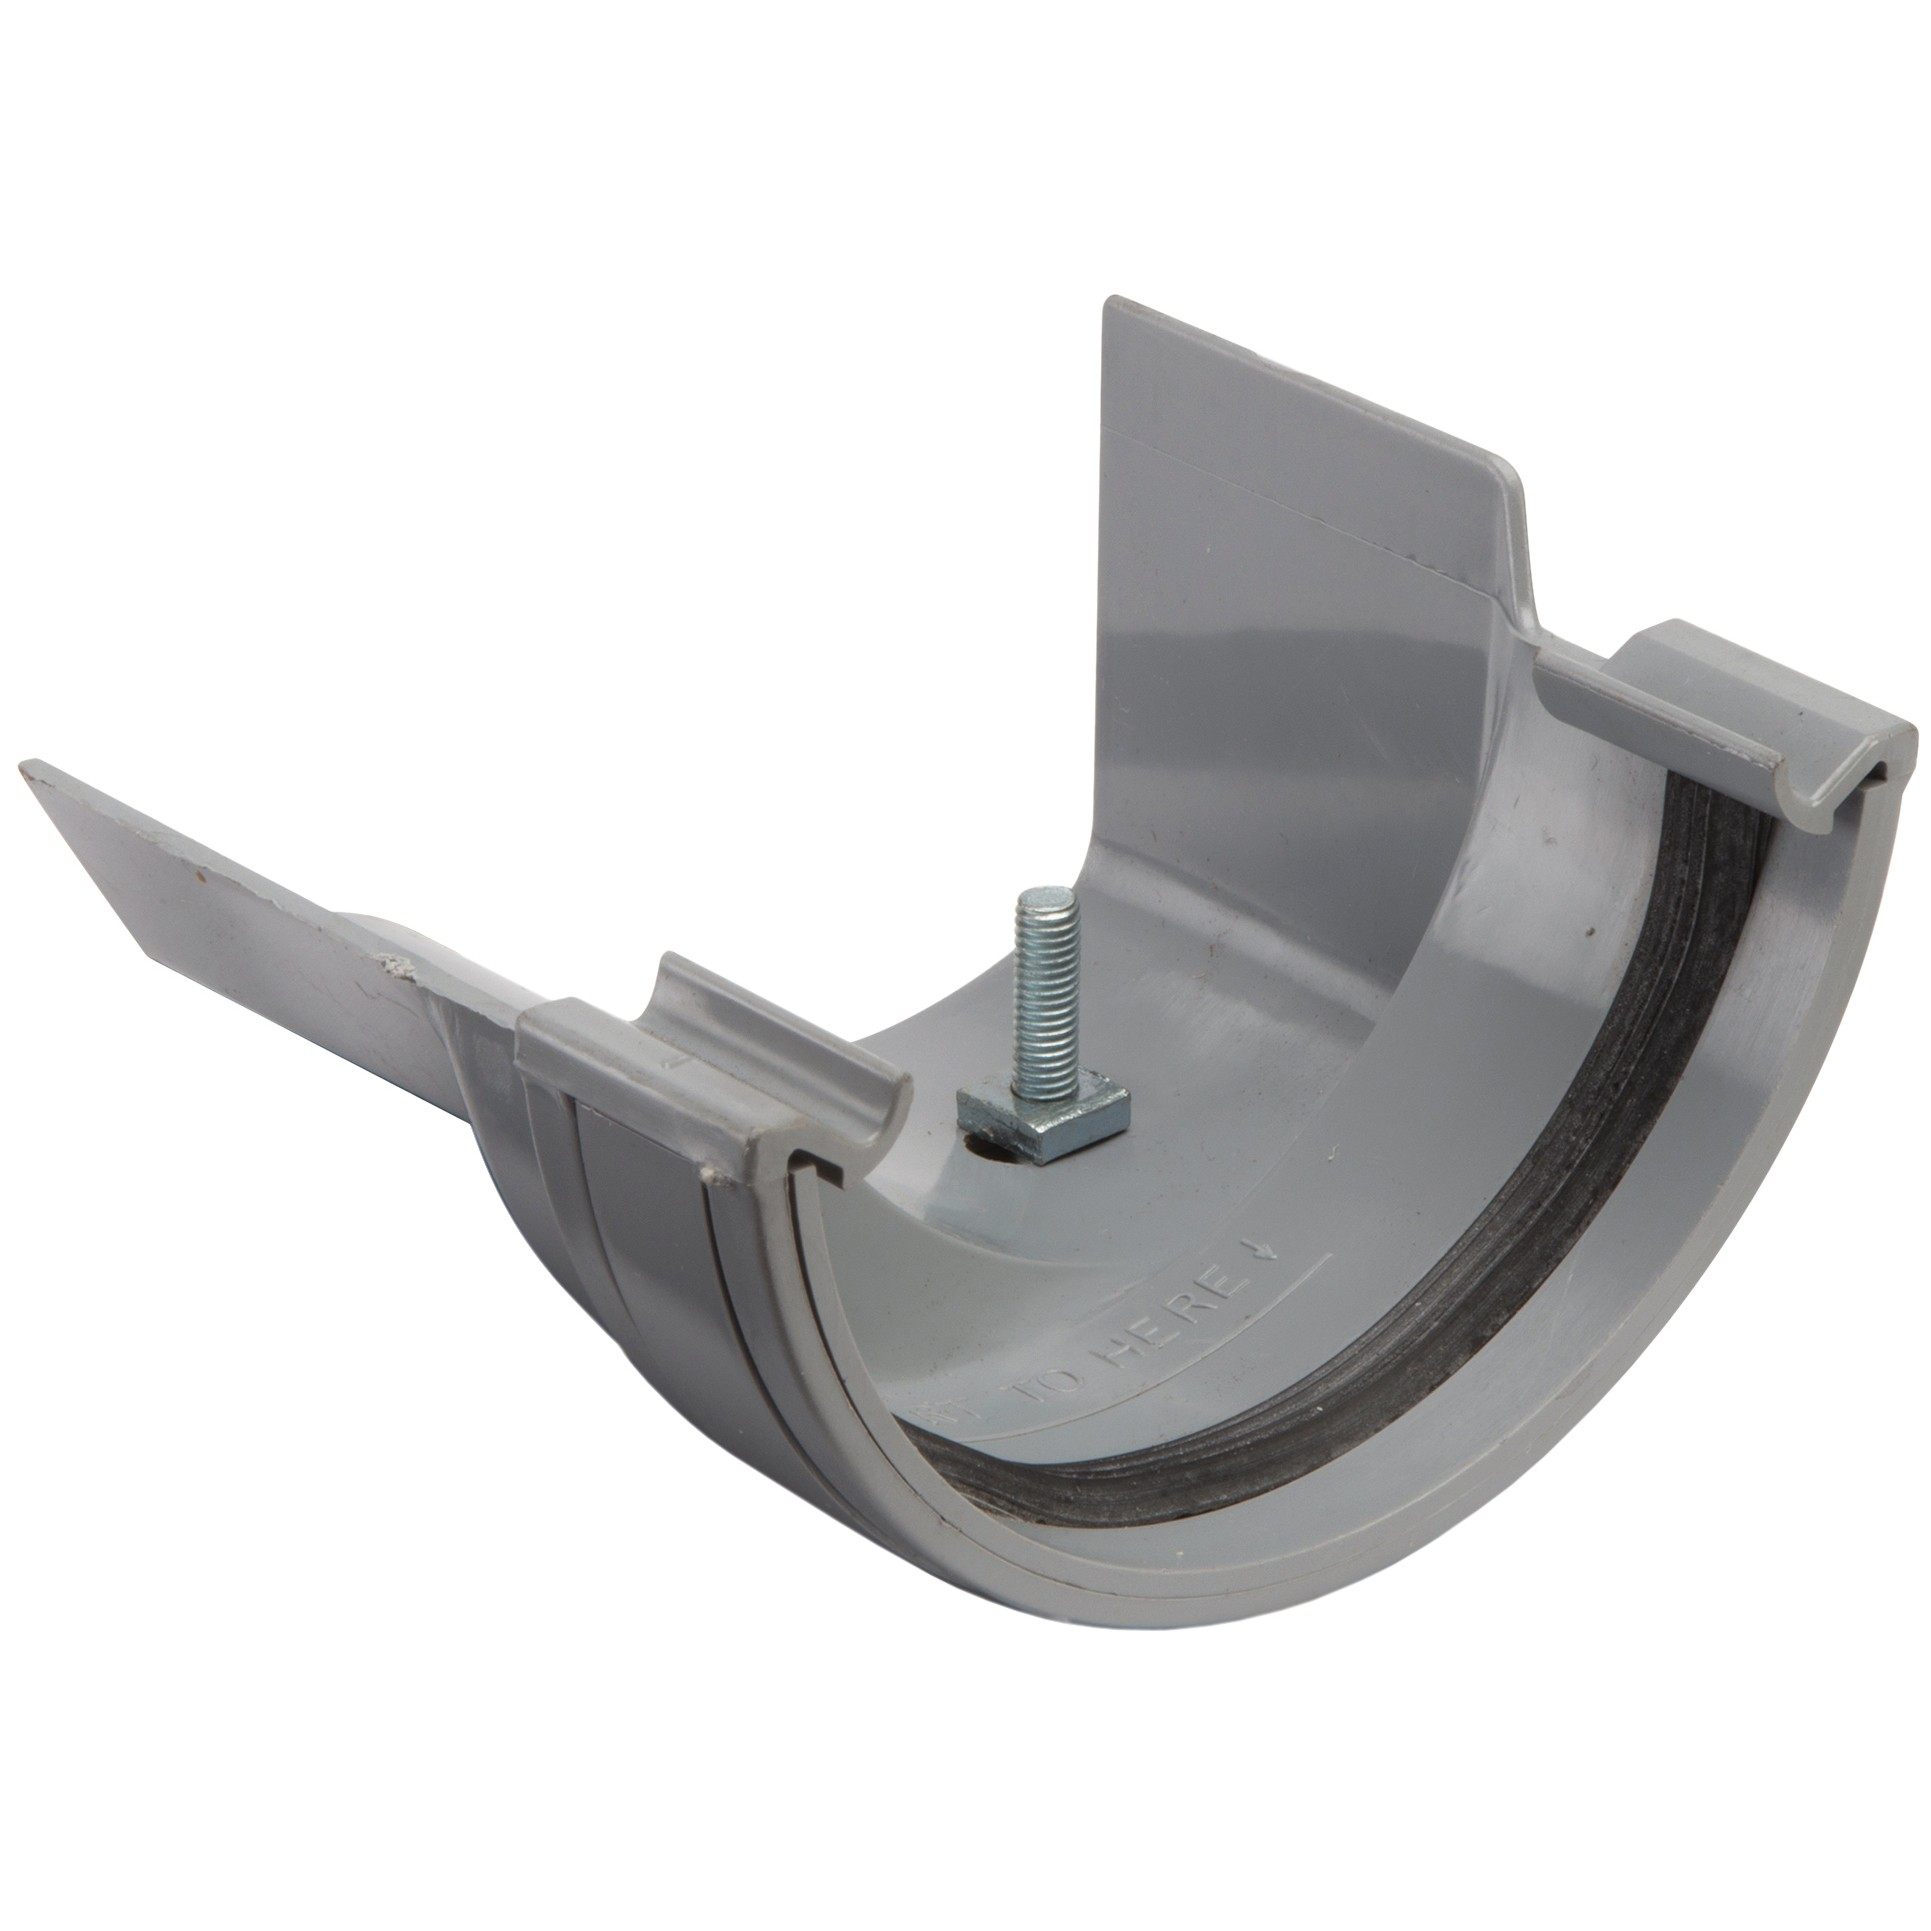 Polypipe 112mm Half Round to Metal 130mm Ogee Gutter Adaptor (Left Hand) - Grey